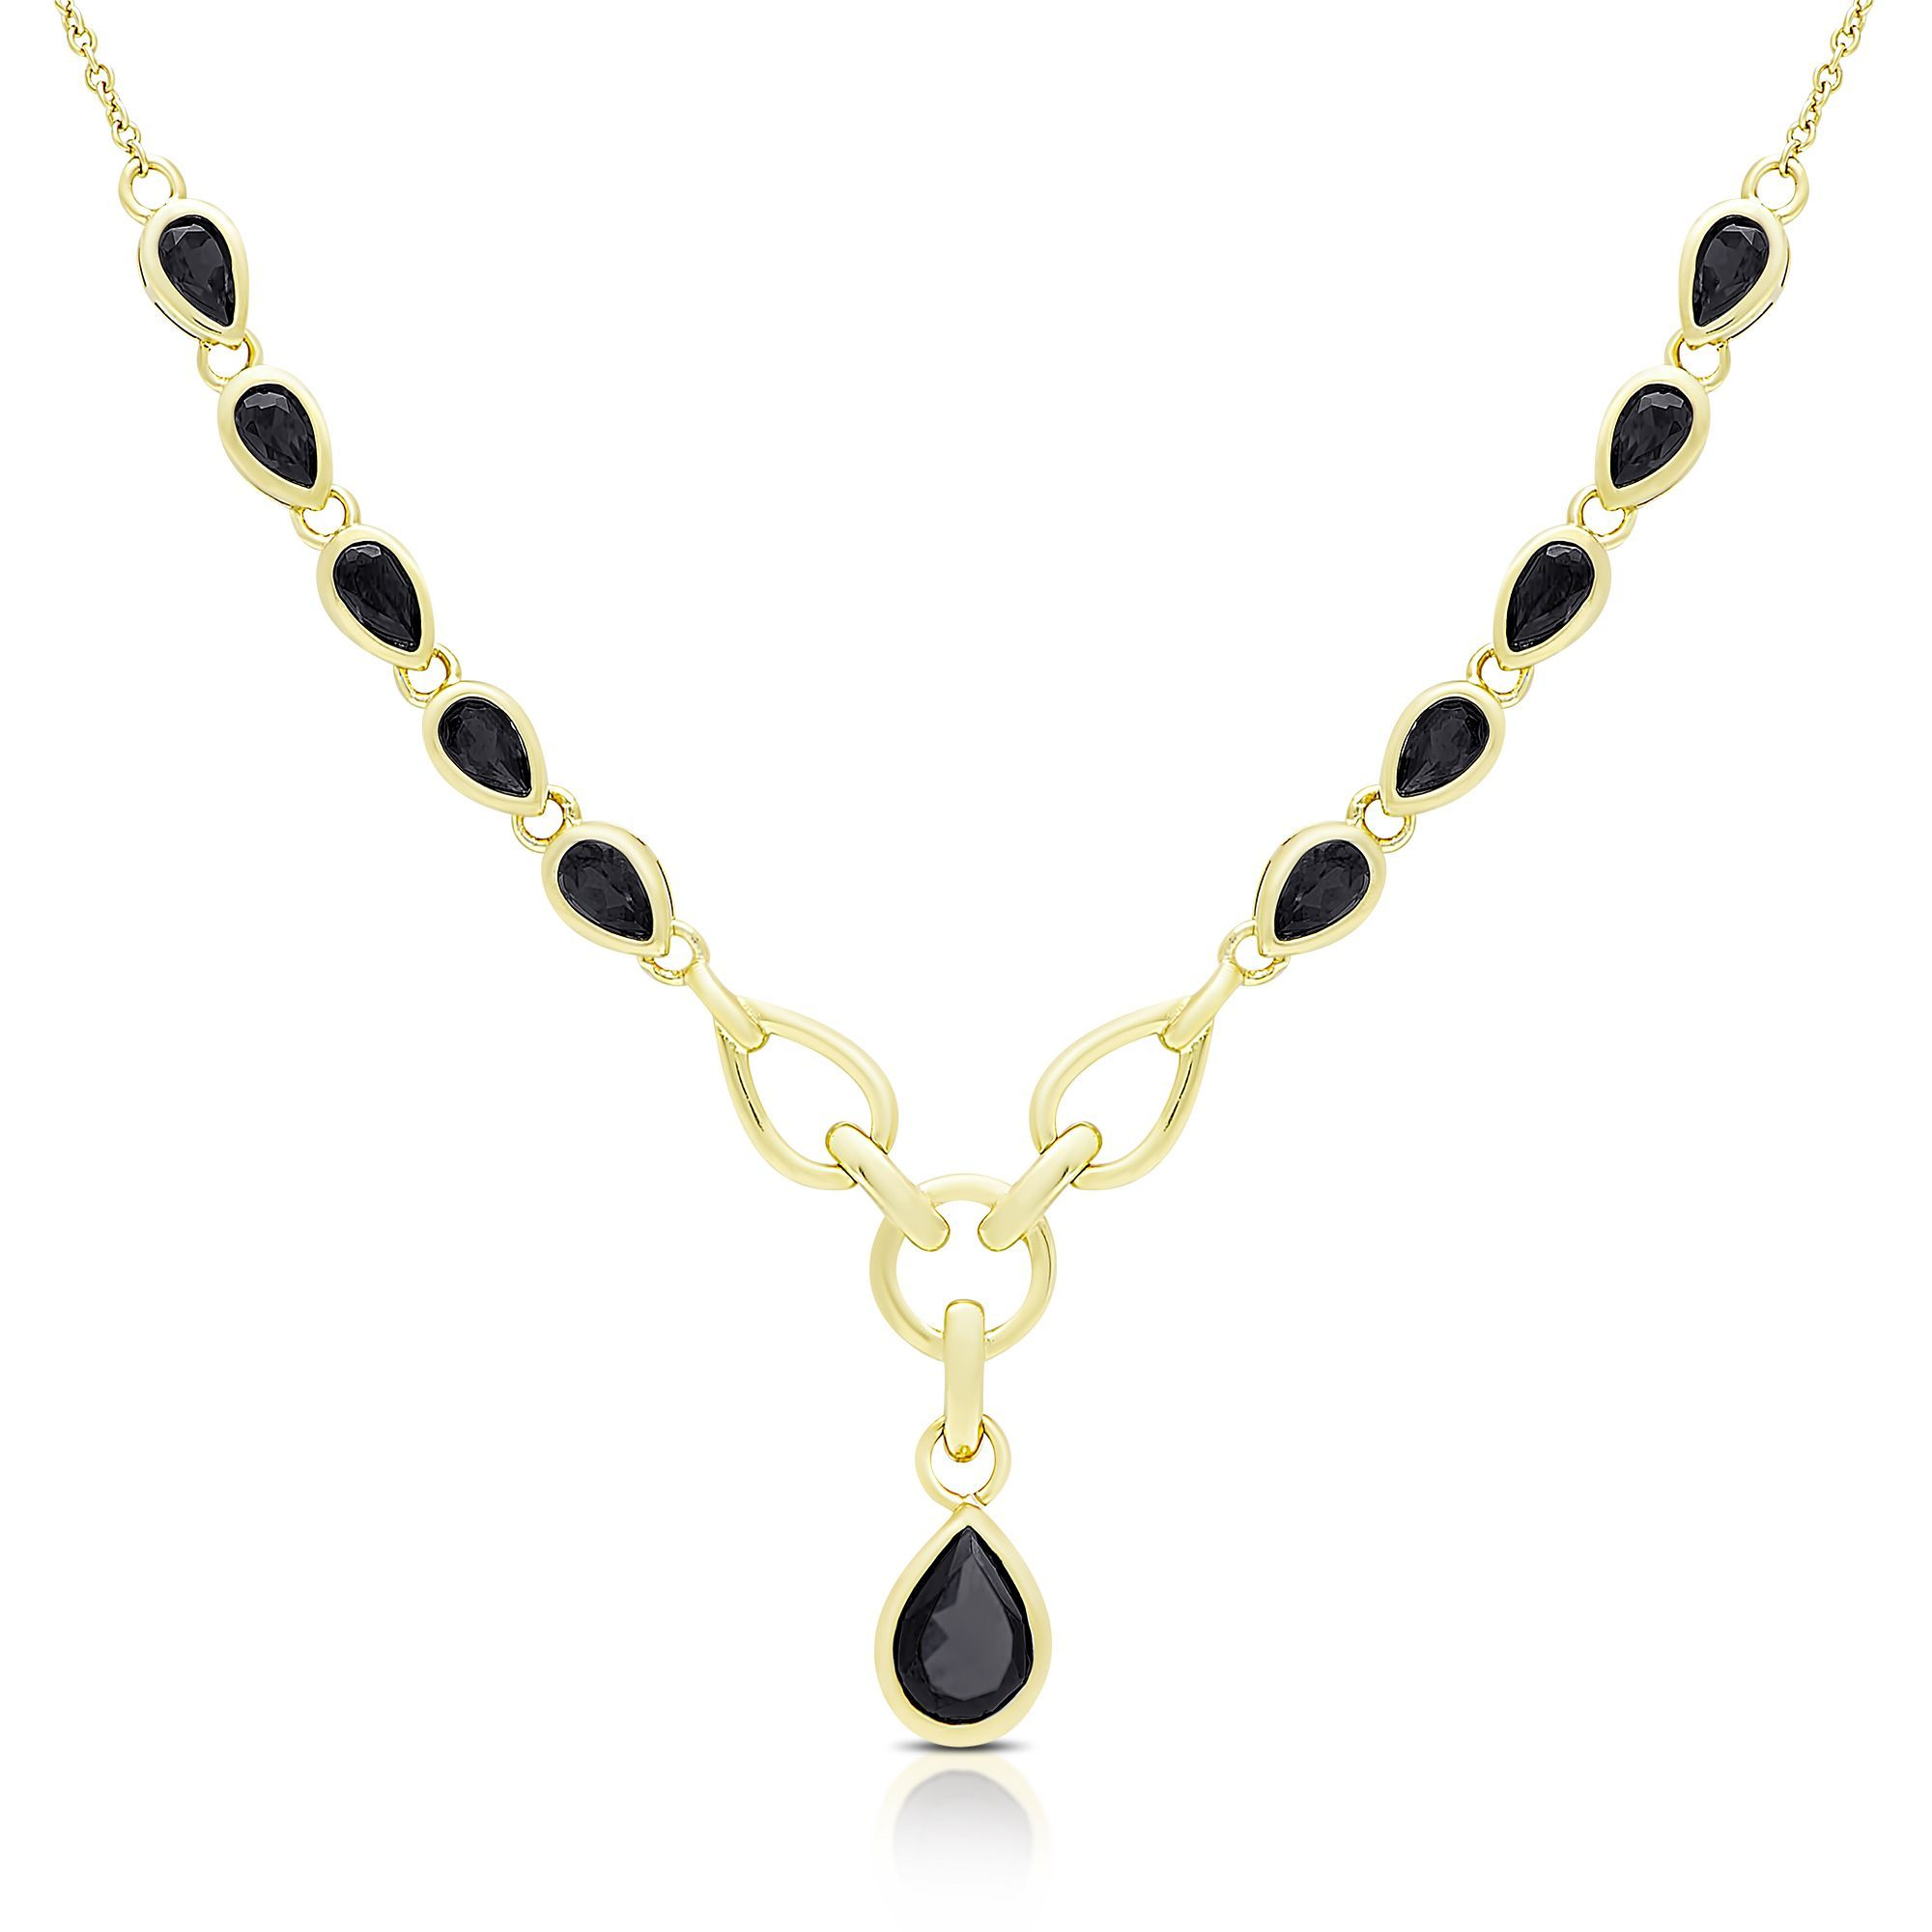 Dolce giavonna gold over silver sapphire teardrop necklace osn